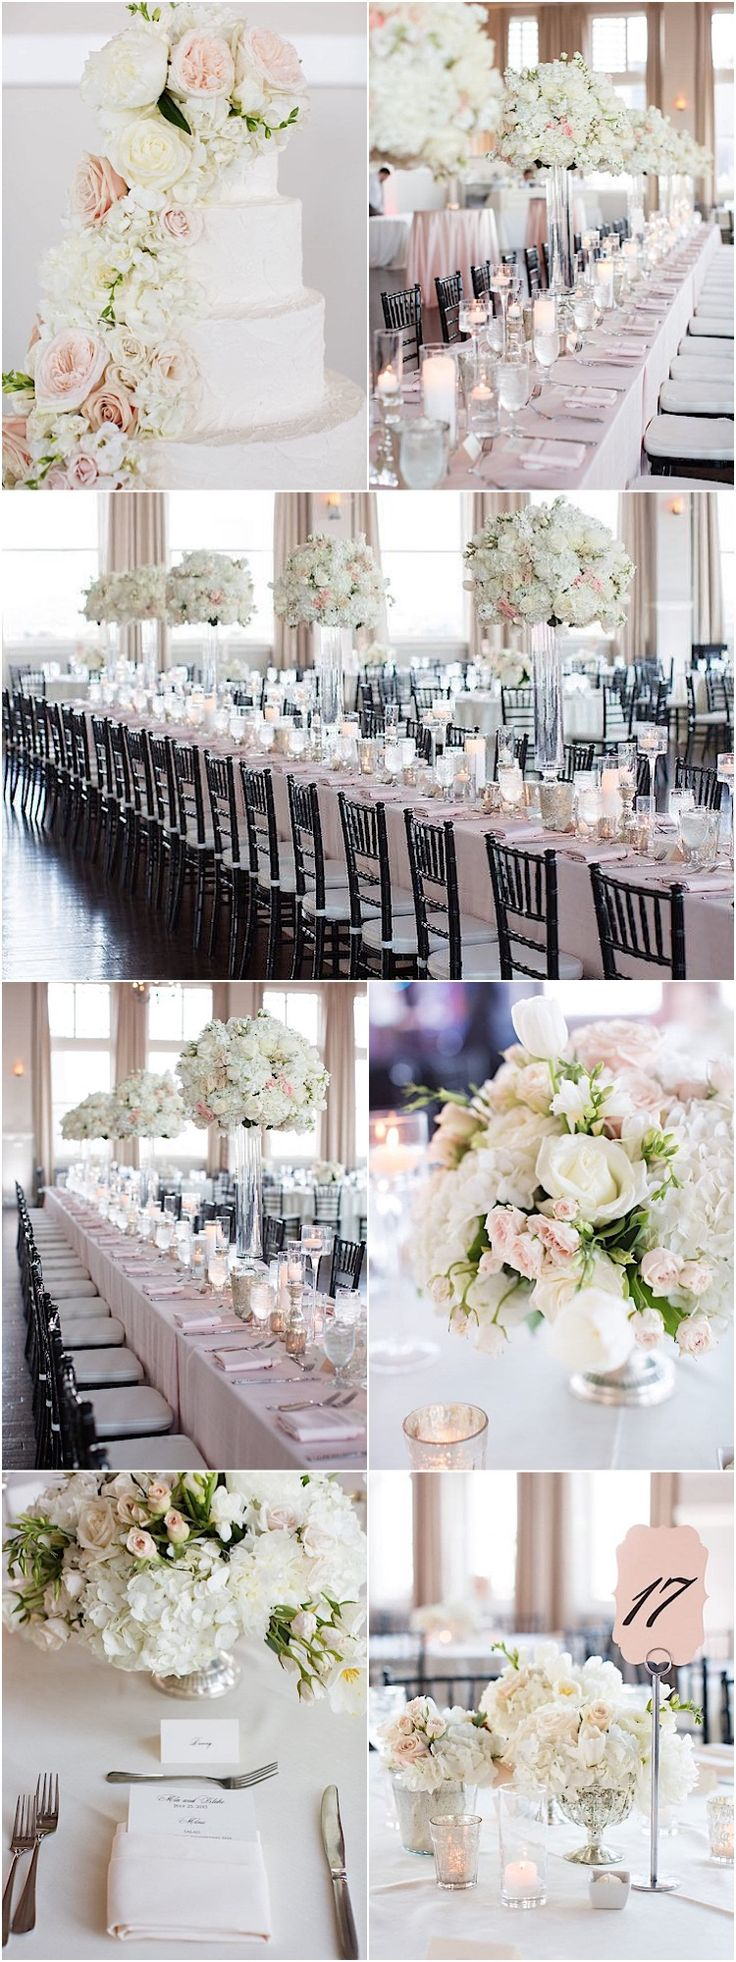 Glamorous white ballroom wedding reception idea; photo: Sarah Kate Photography                                                                                                                                                                                 More